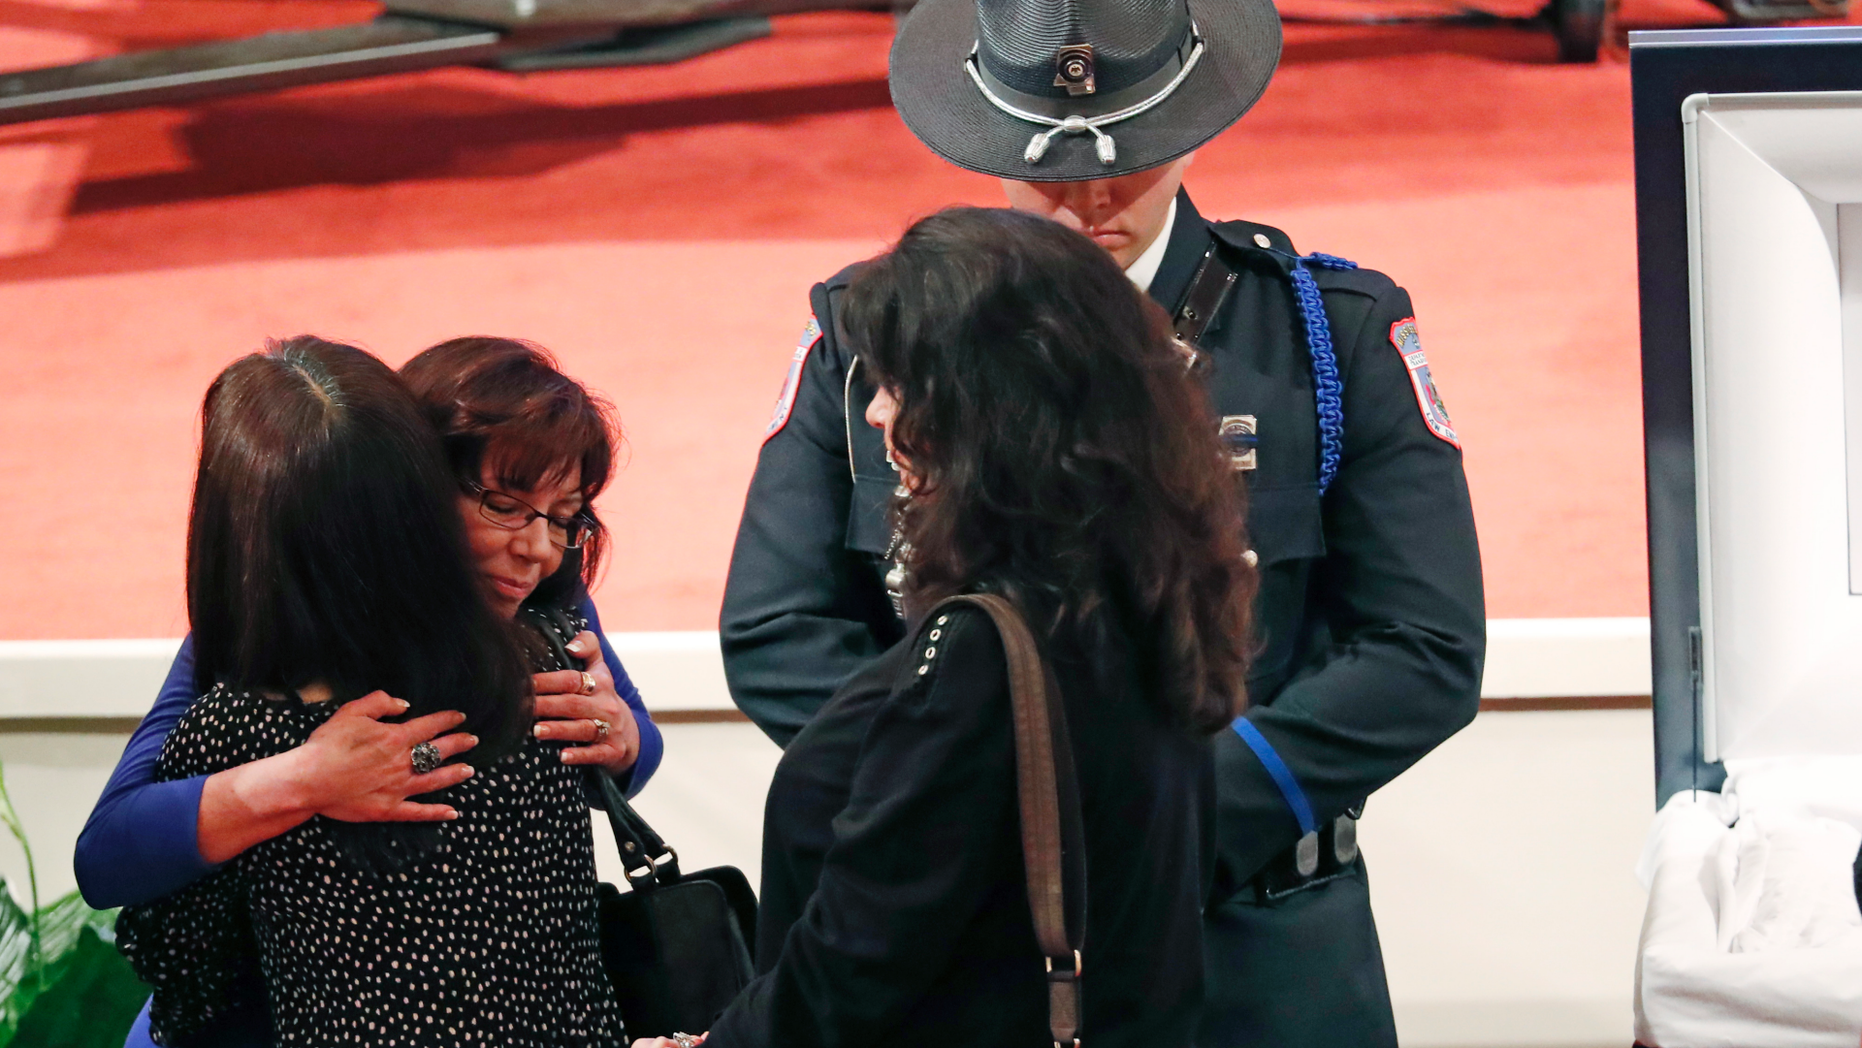 Pamela McKeithen, widow of officer Robert S. McKeithen, second from left, hugs a mourner as a member of a law enforcement agency honor guard, stands watch, as people pay their respects to McKeithen and his family in the First Baptist Church of Biloxi, Monday morning, May 13, 2019, prior to the funeral service. McKeithen was killed outside headquarters May 5. (AP Photo/Rogelio V. Solis)